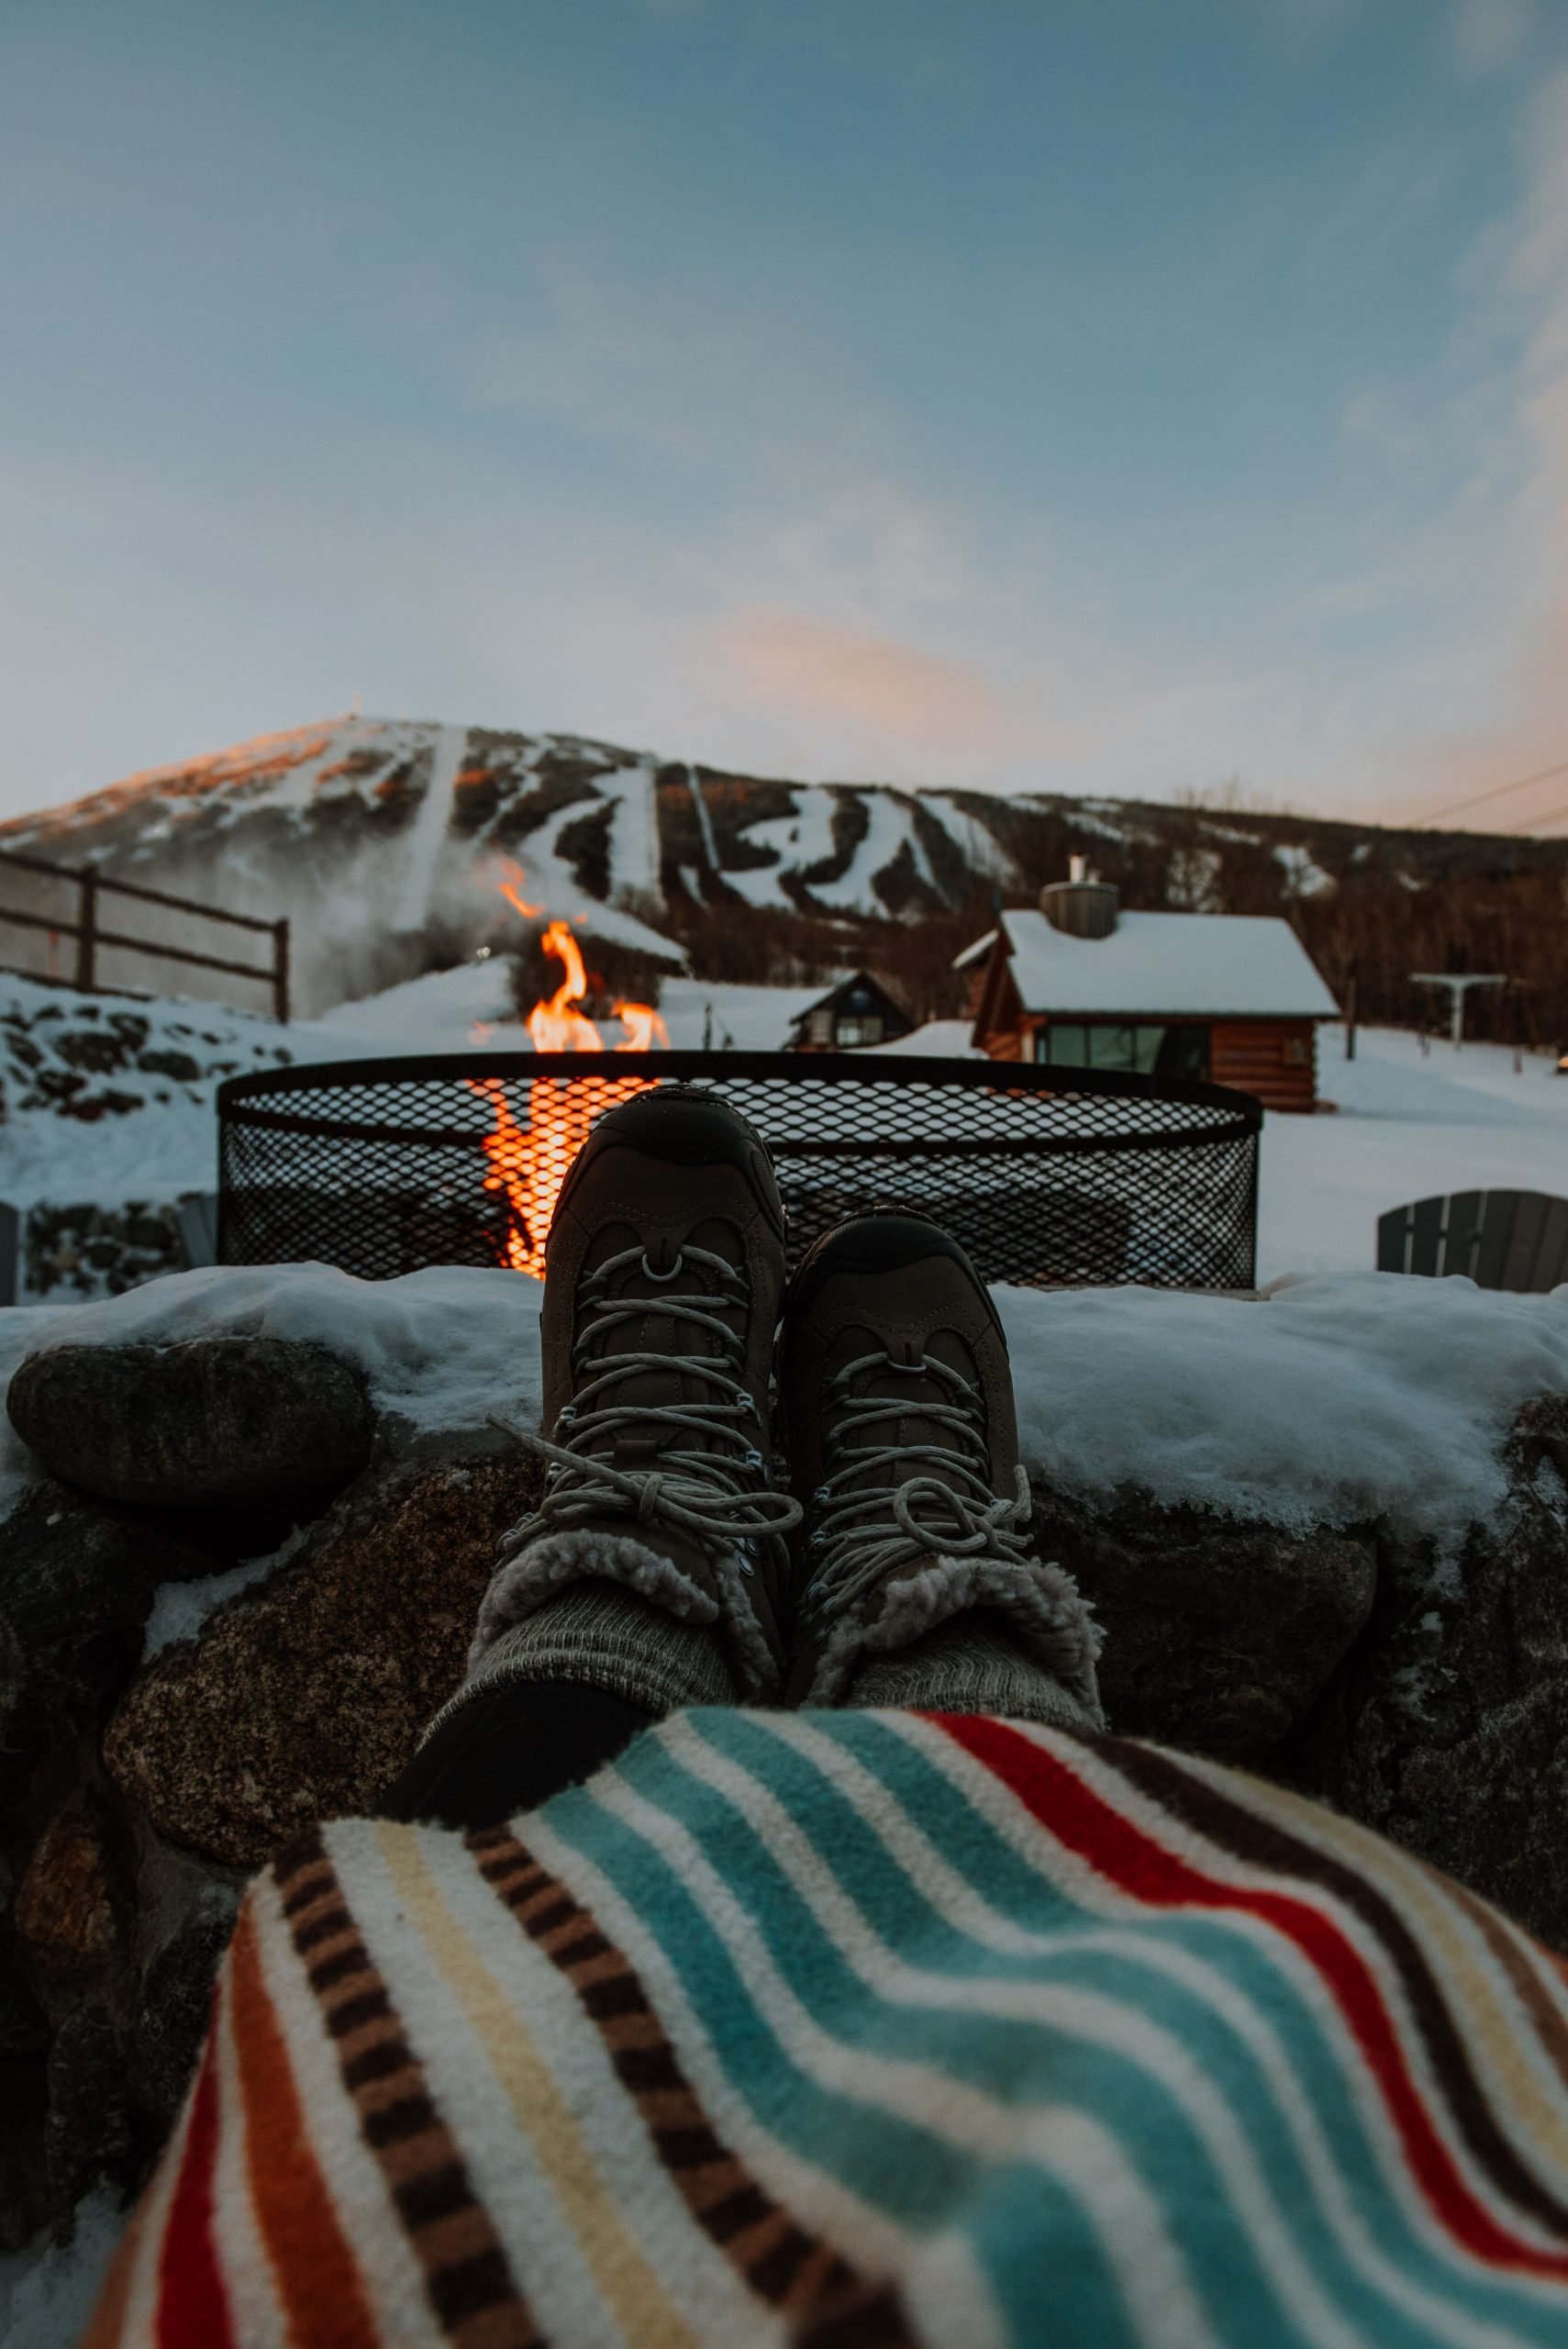 Cozy fire pit at Sugarloaf Mountain in Maine